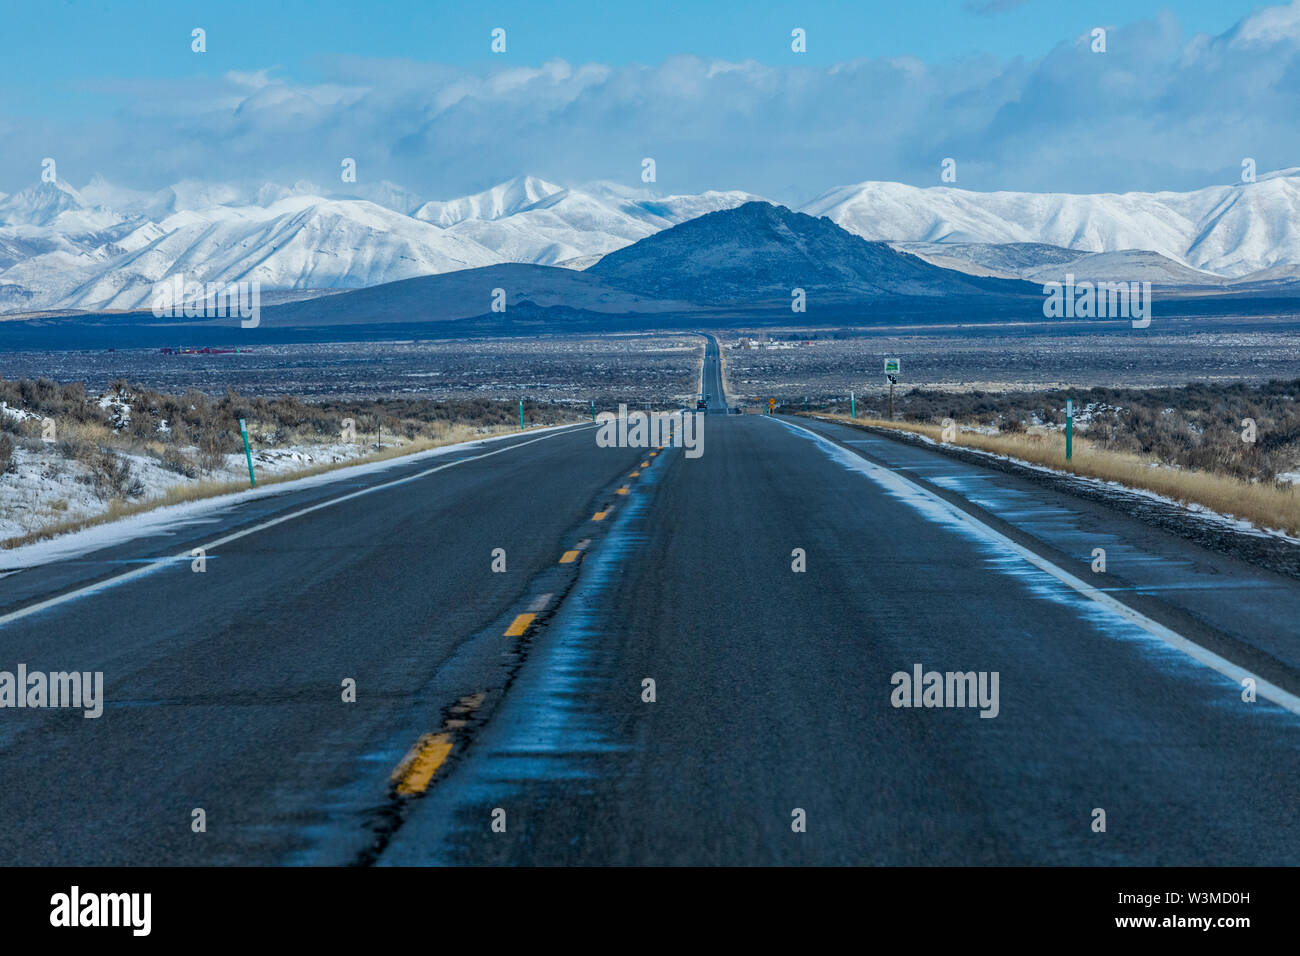 Road to snowcapped mountains in Sun Valley, Idaho, USA - Stock Image